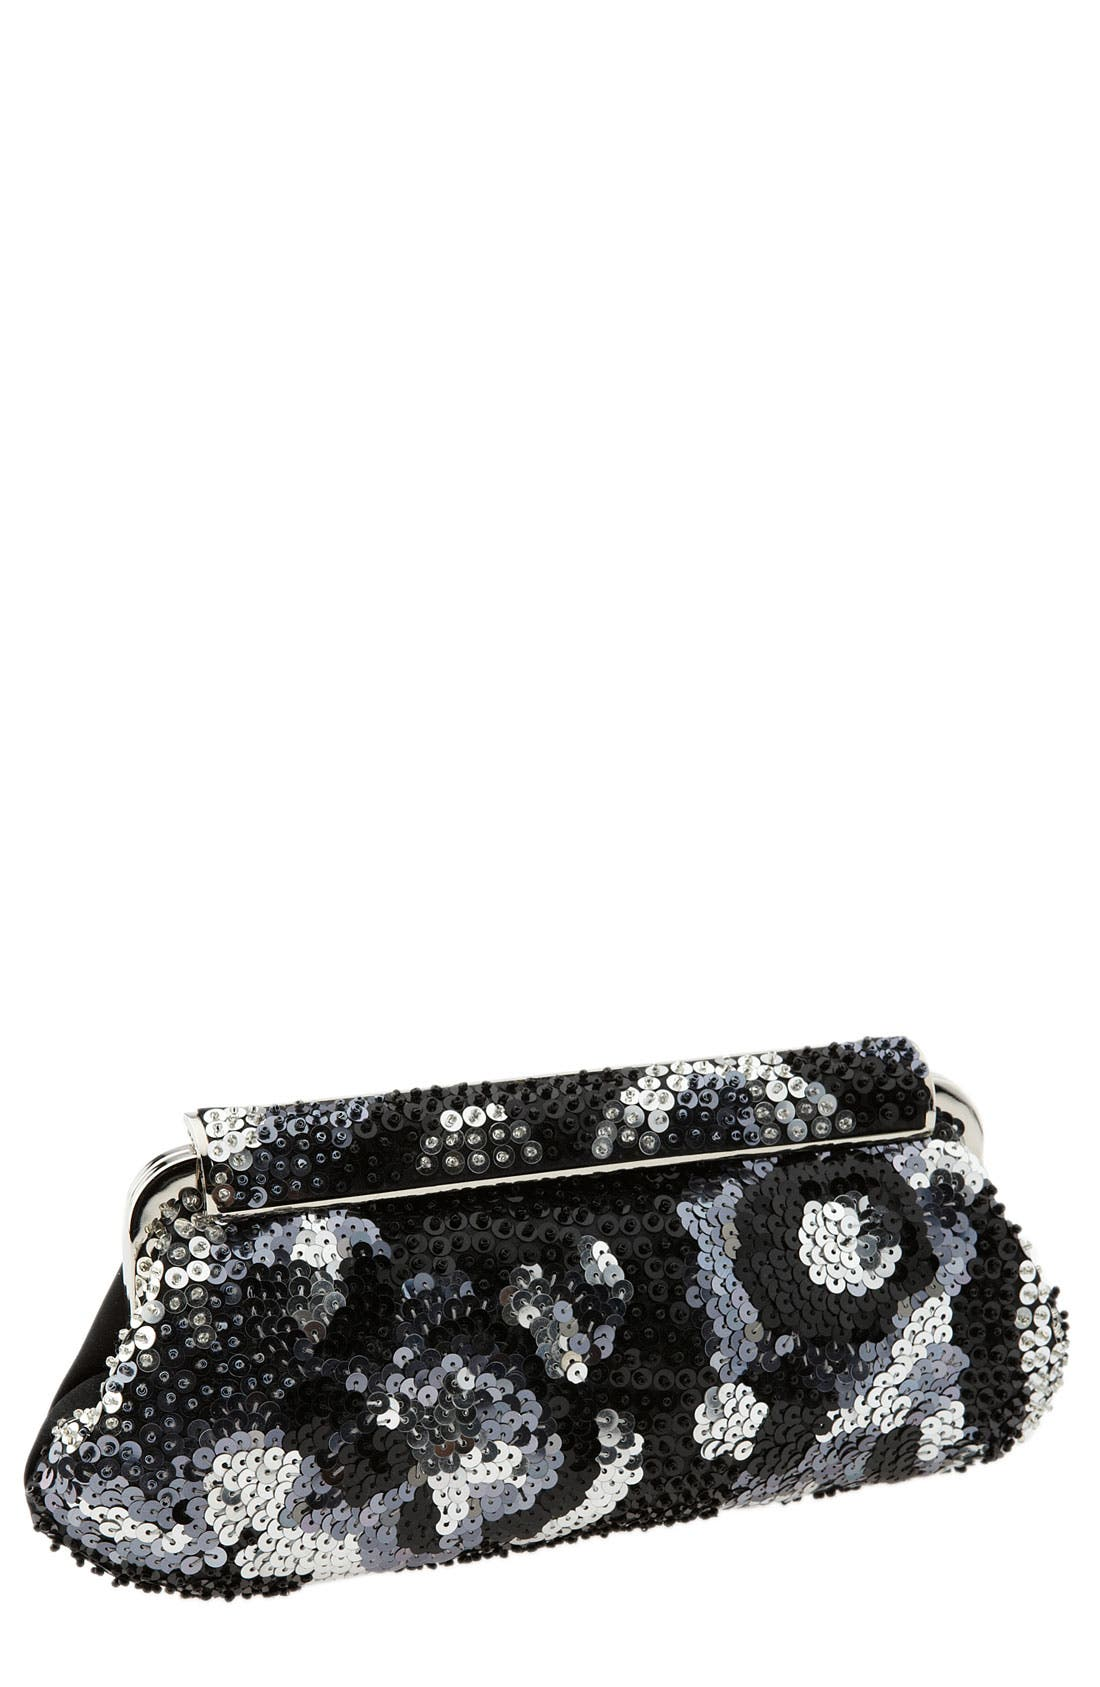 Main Image - Jessica McClintock Patterned Sequin Clutch